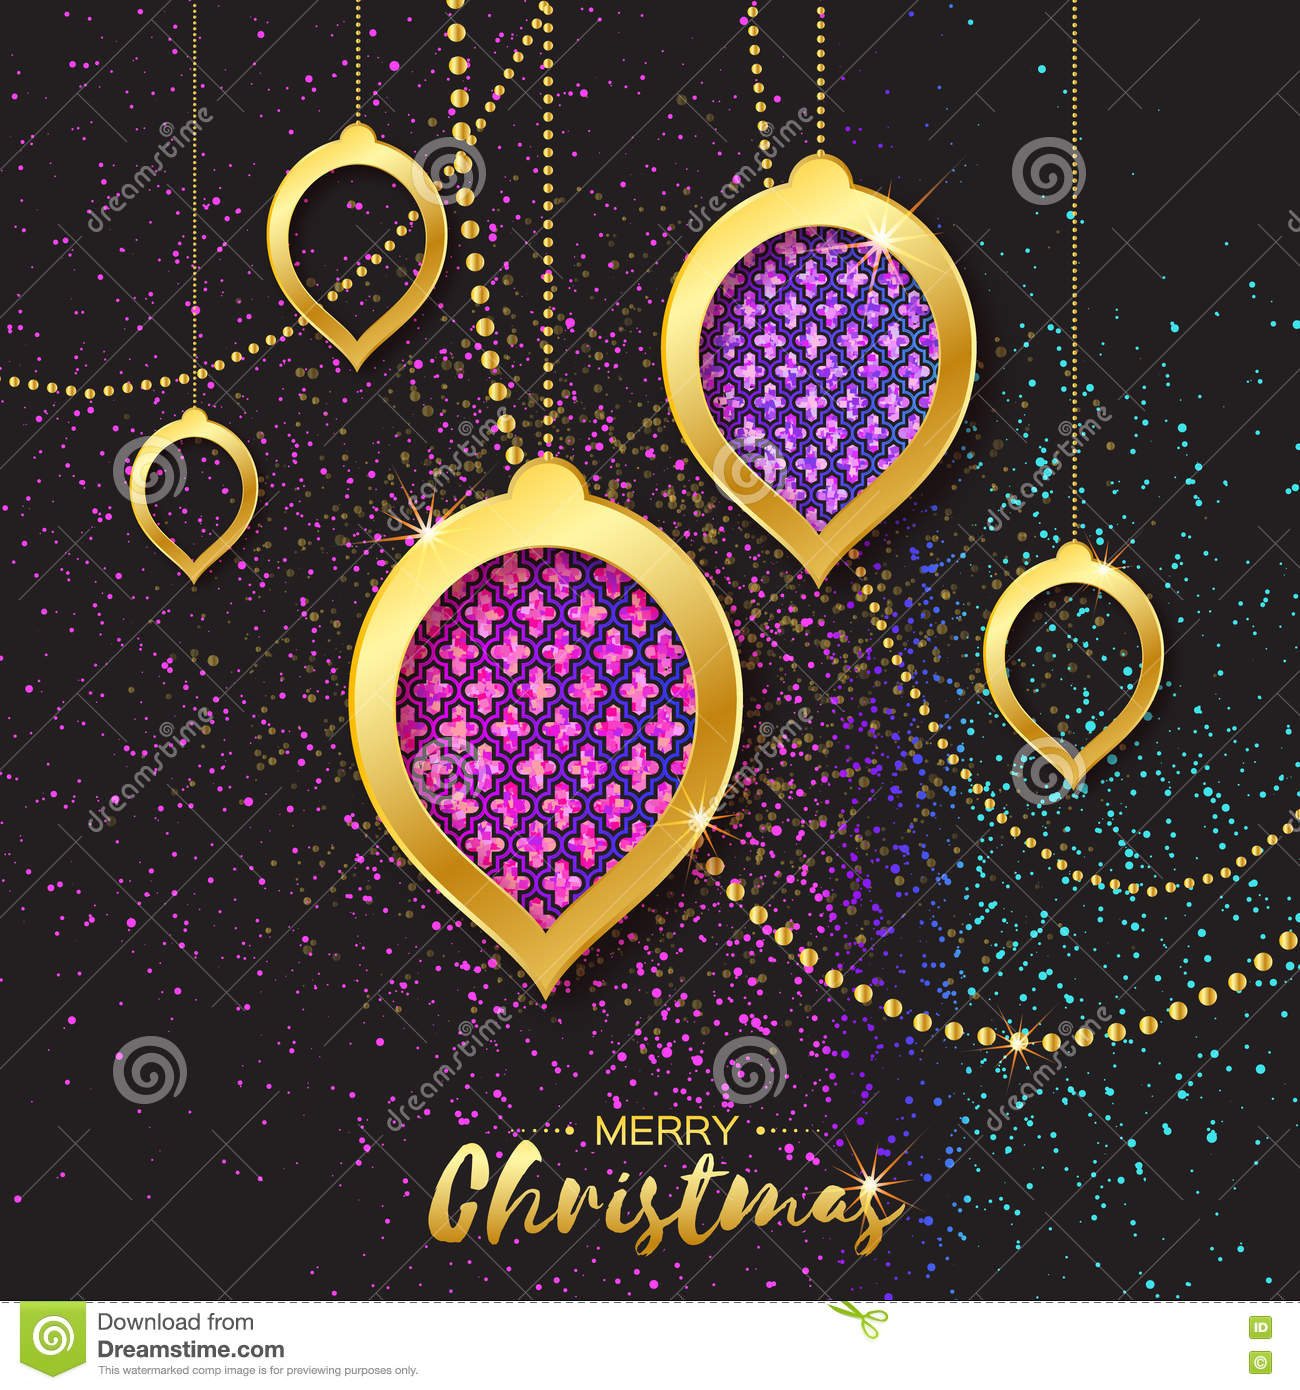 Merry Christmas Golden Glitter Pink Purple Balls Beautiful Decoration Bauble Stock Vector Illustration Of Arabesque Bright 78917025